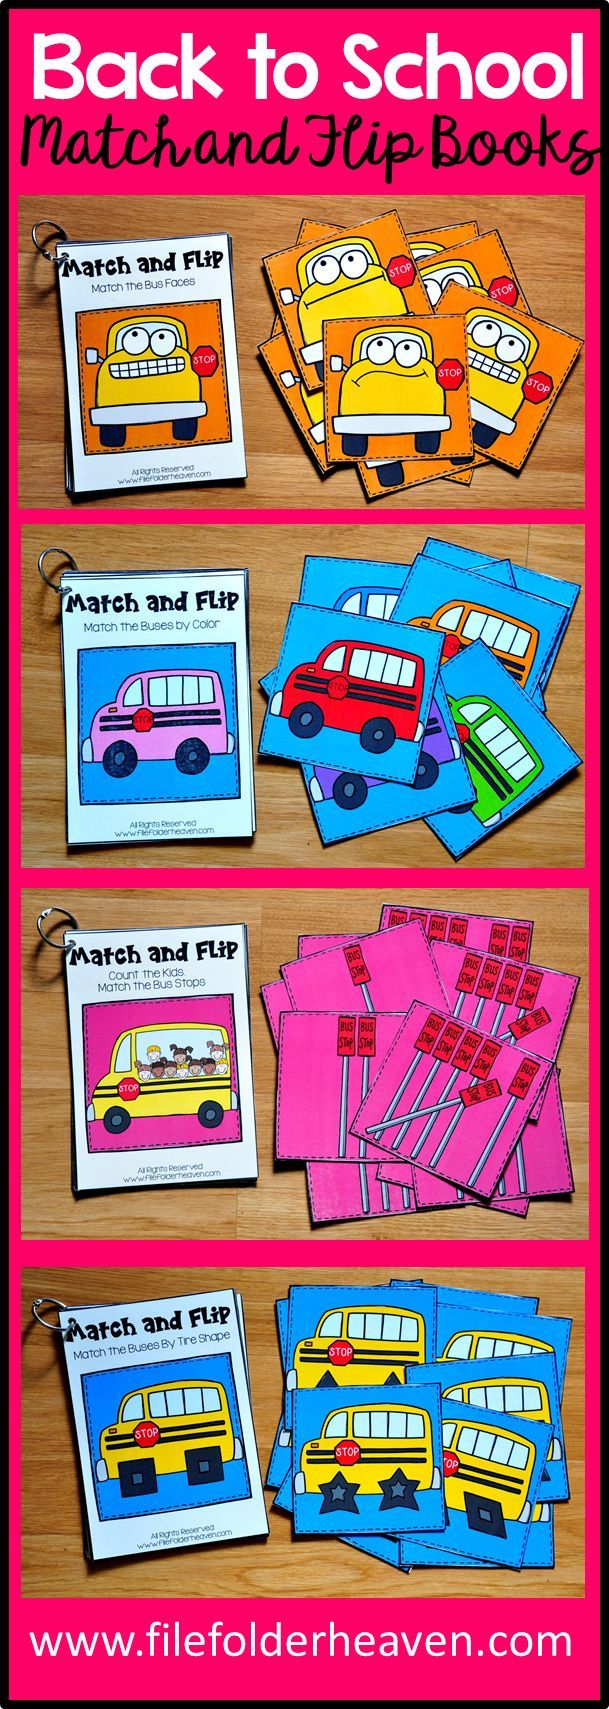 These  Back to School Match and Flip Books focus on basic matching skills. In these activities, students work on matching picture to picture (or by shape), matching by color, matching by counting.  There are four Match and Flip Books included in this download.  Match the Buses by Color  Match the Number of Kids to Their Bus Stops  Match the Bus Faces  Match the Buses by Tire Shape